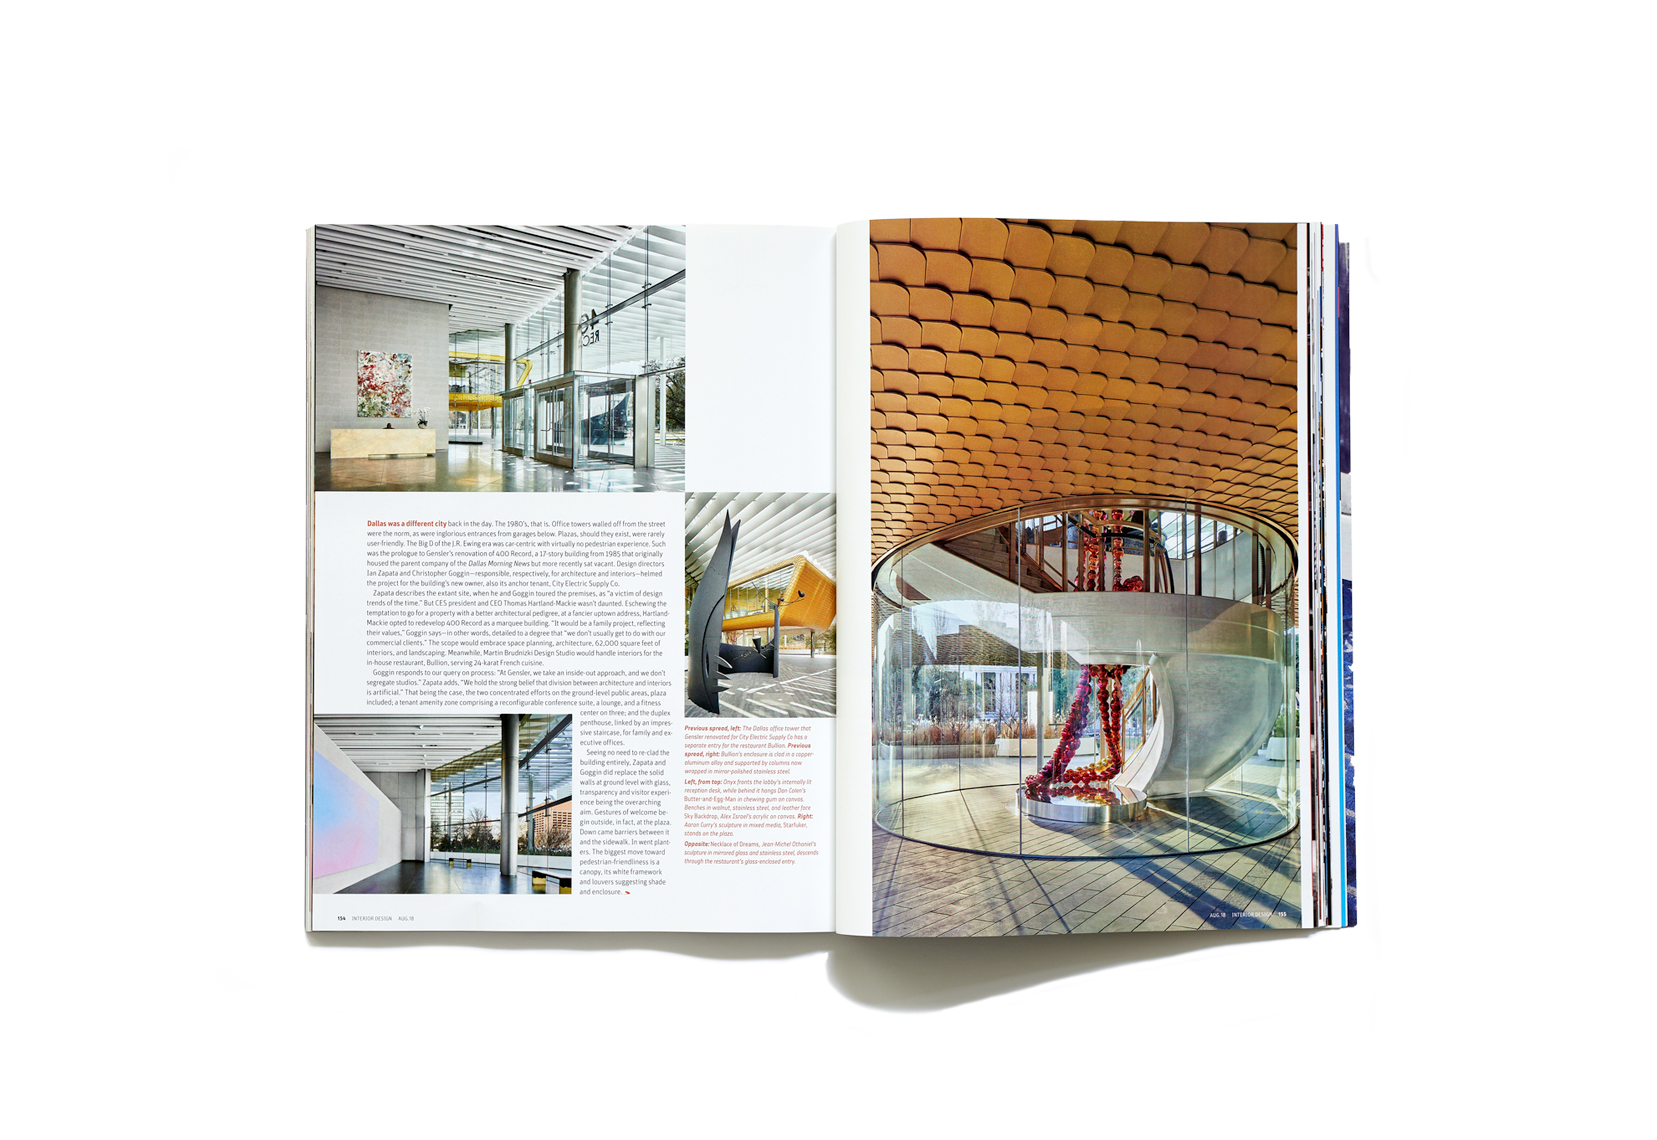 dror baldinger faia architectural photography interior design magazine 400 record dallas texas Gensler